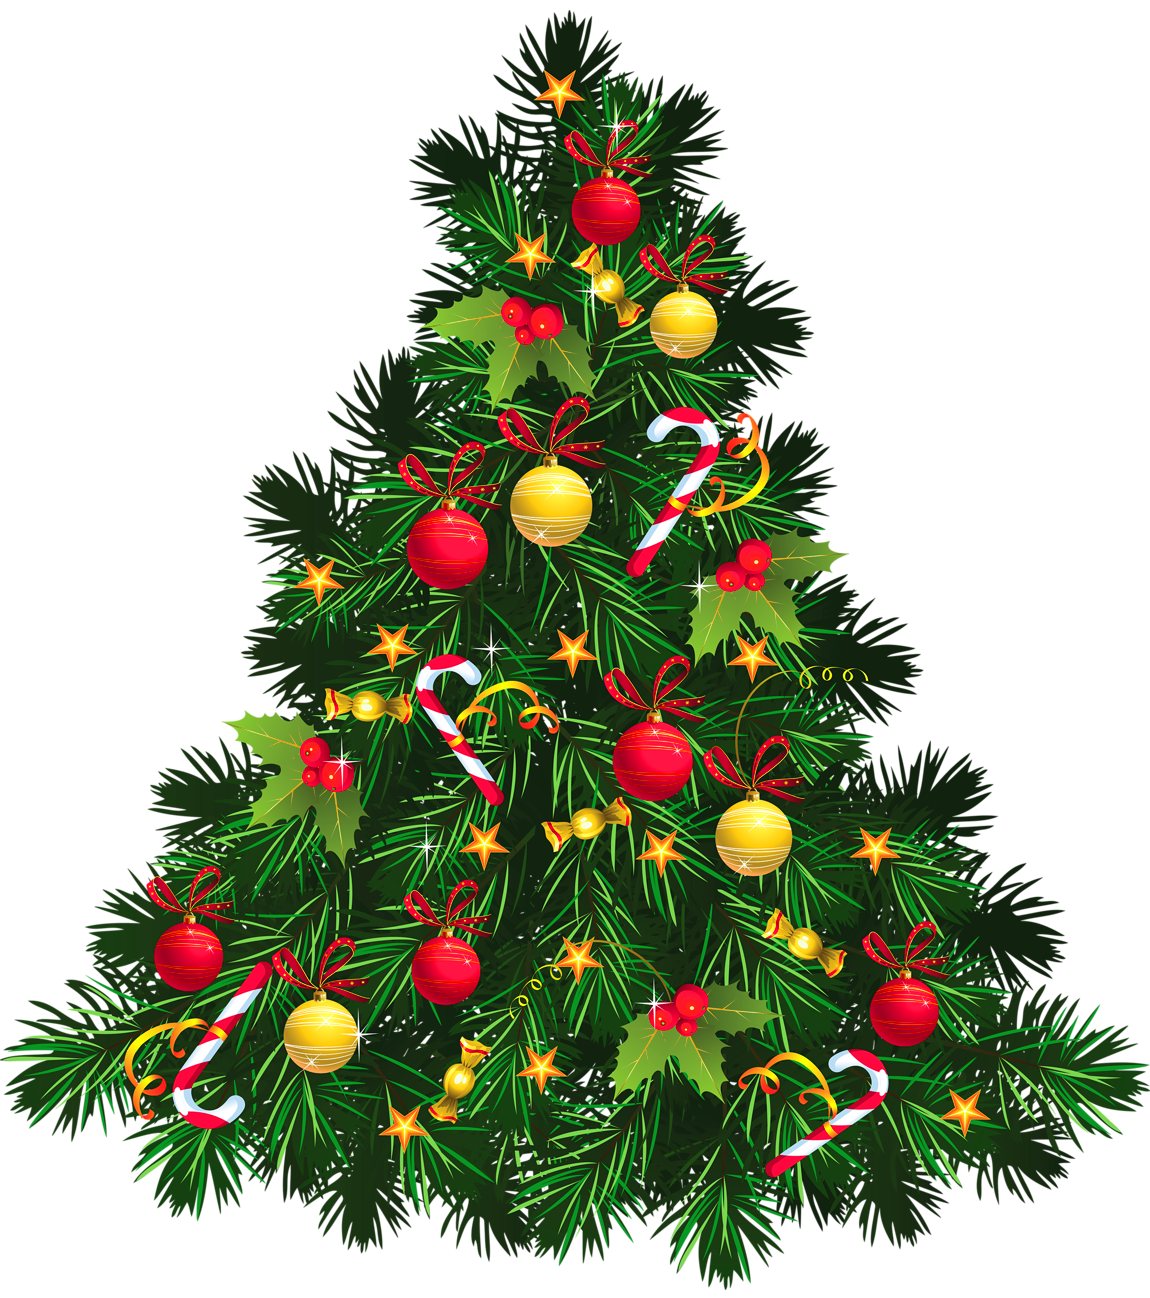 Transparent Christmas Tree with Ornaments PNG Picture | CLIPART ...